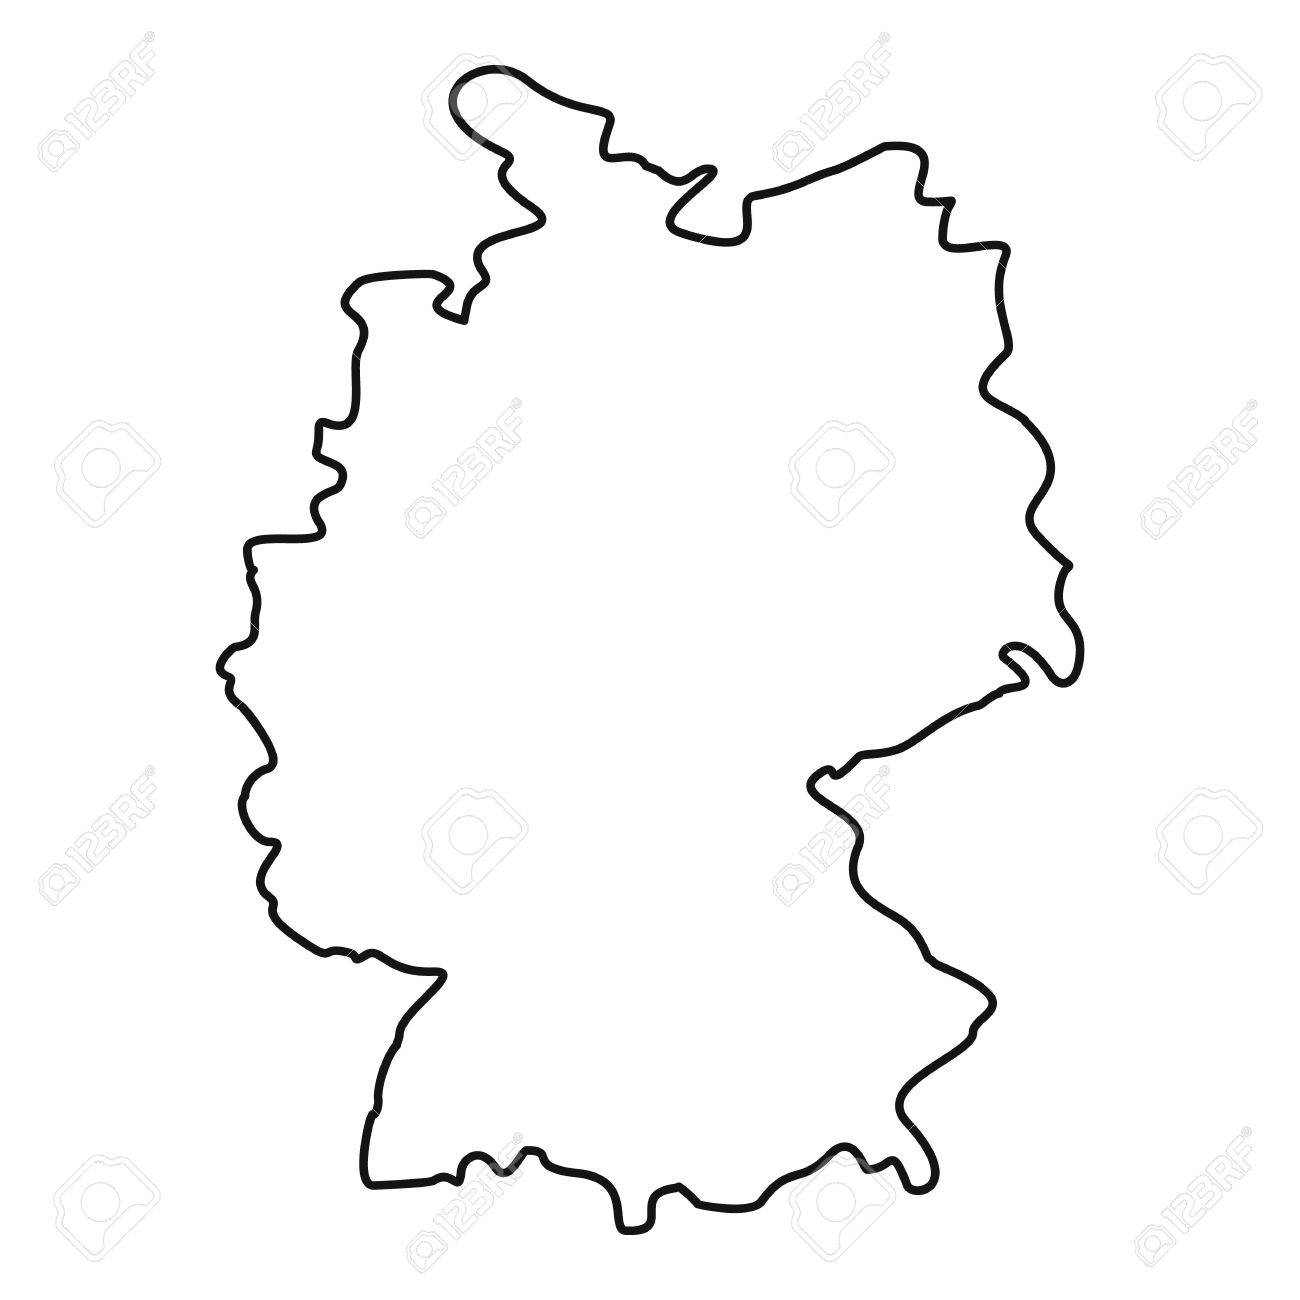 Map Of Germany Outline.Germany Map Icon Outline Illustration Of Germany Map Vector